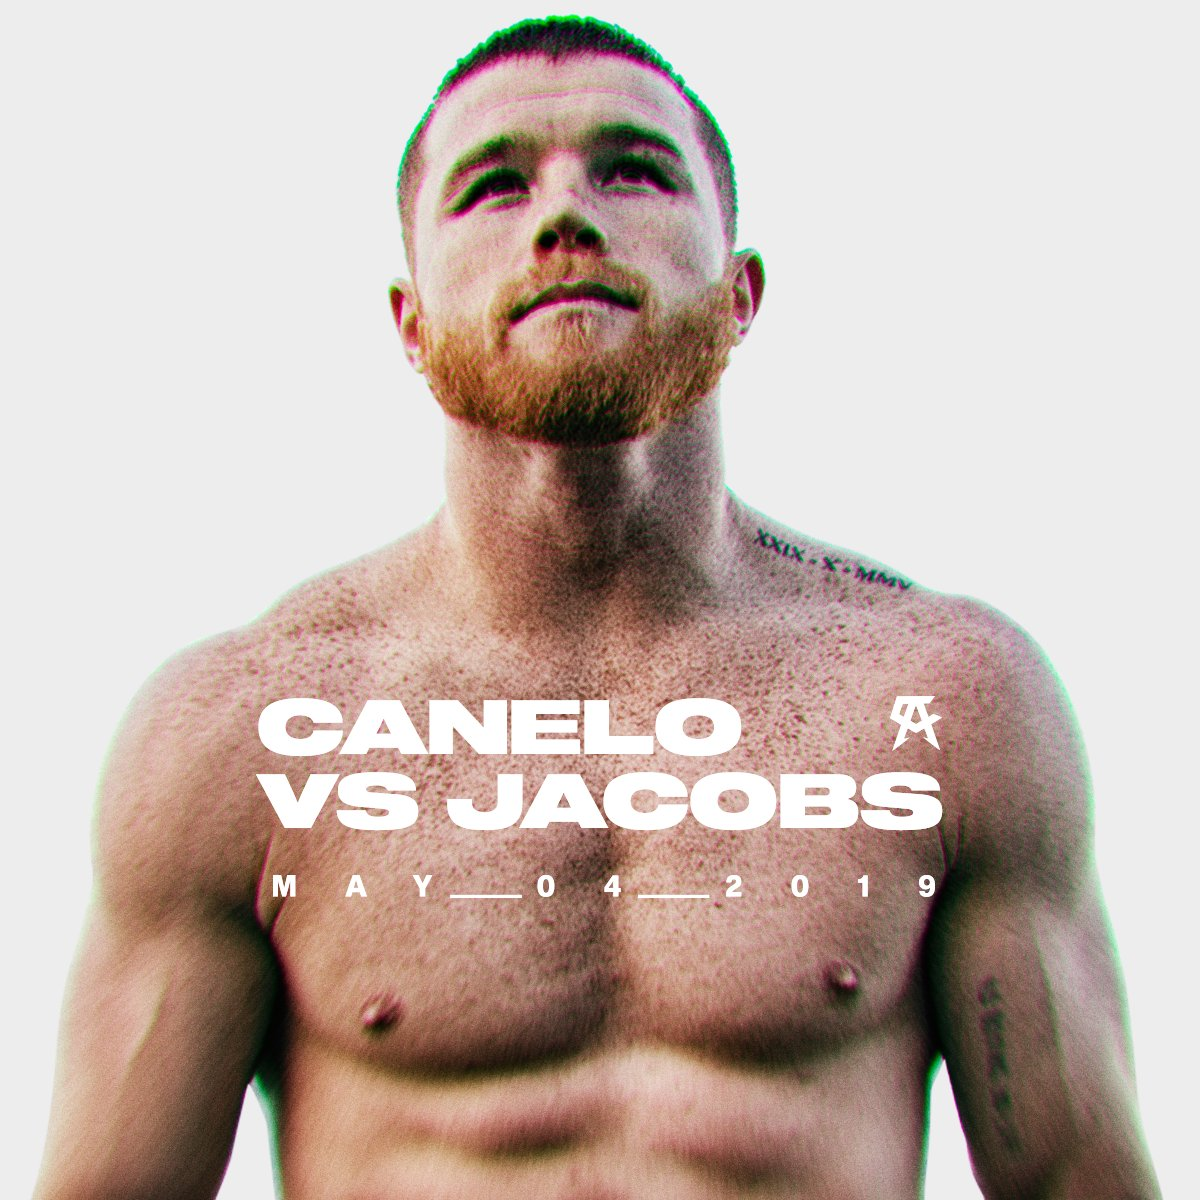 Canelo Alvarez's photo on #CaneloJacobs